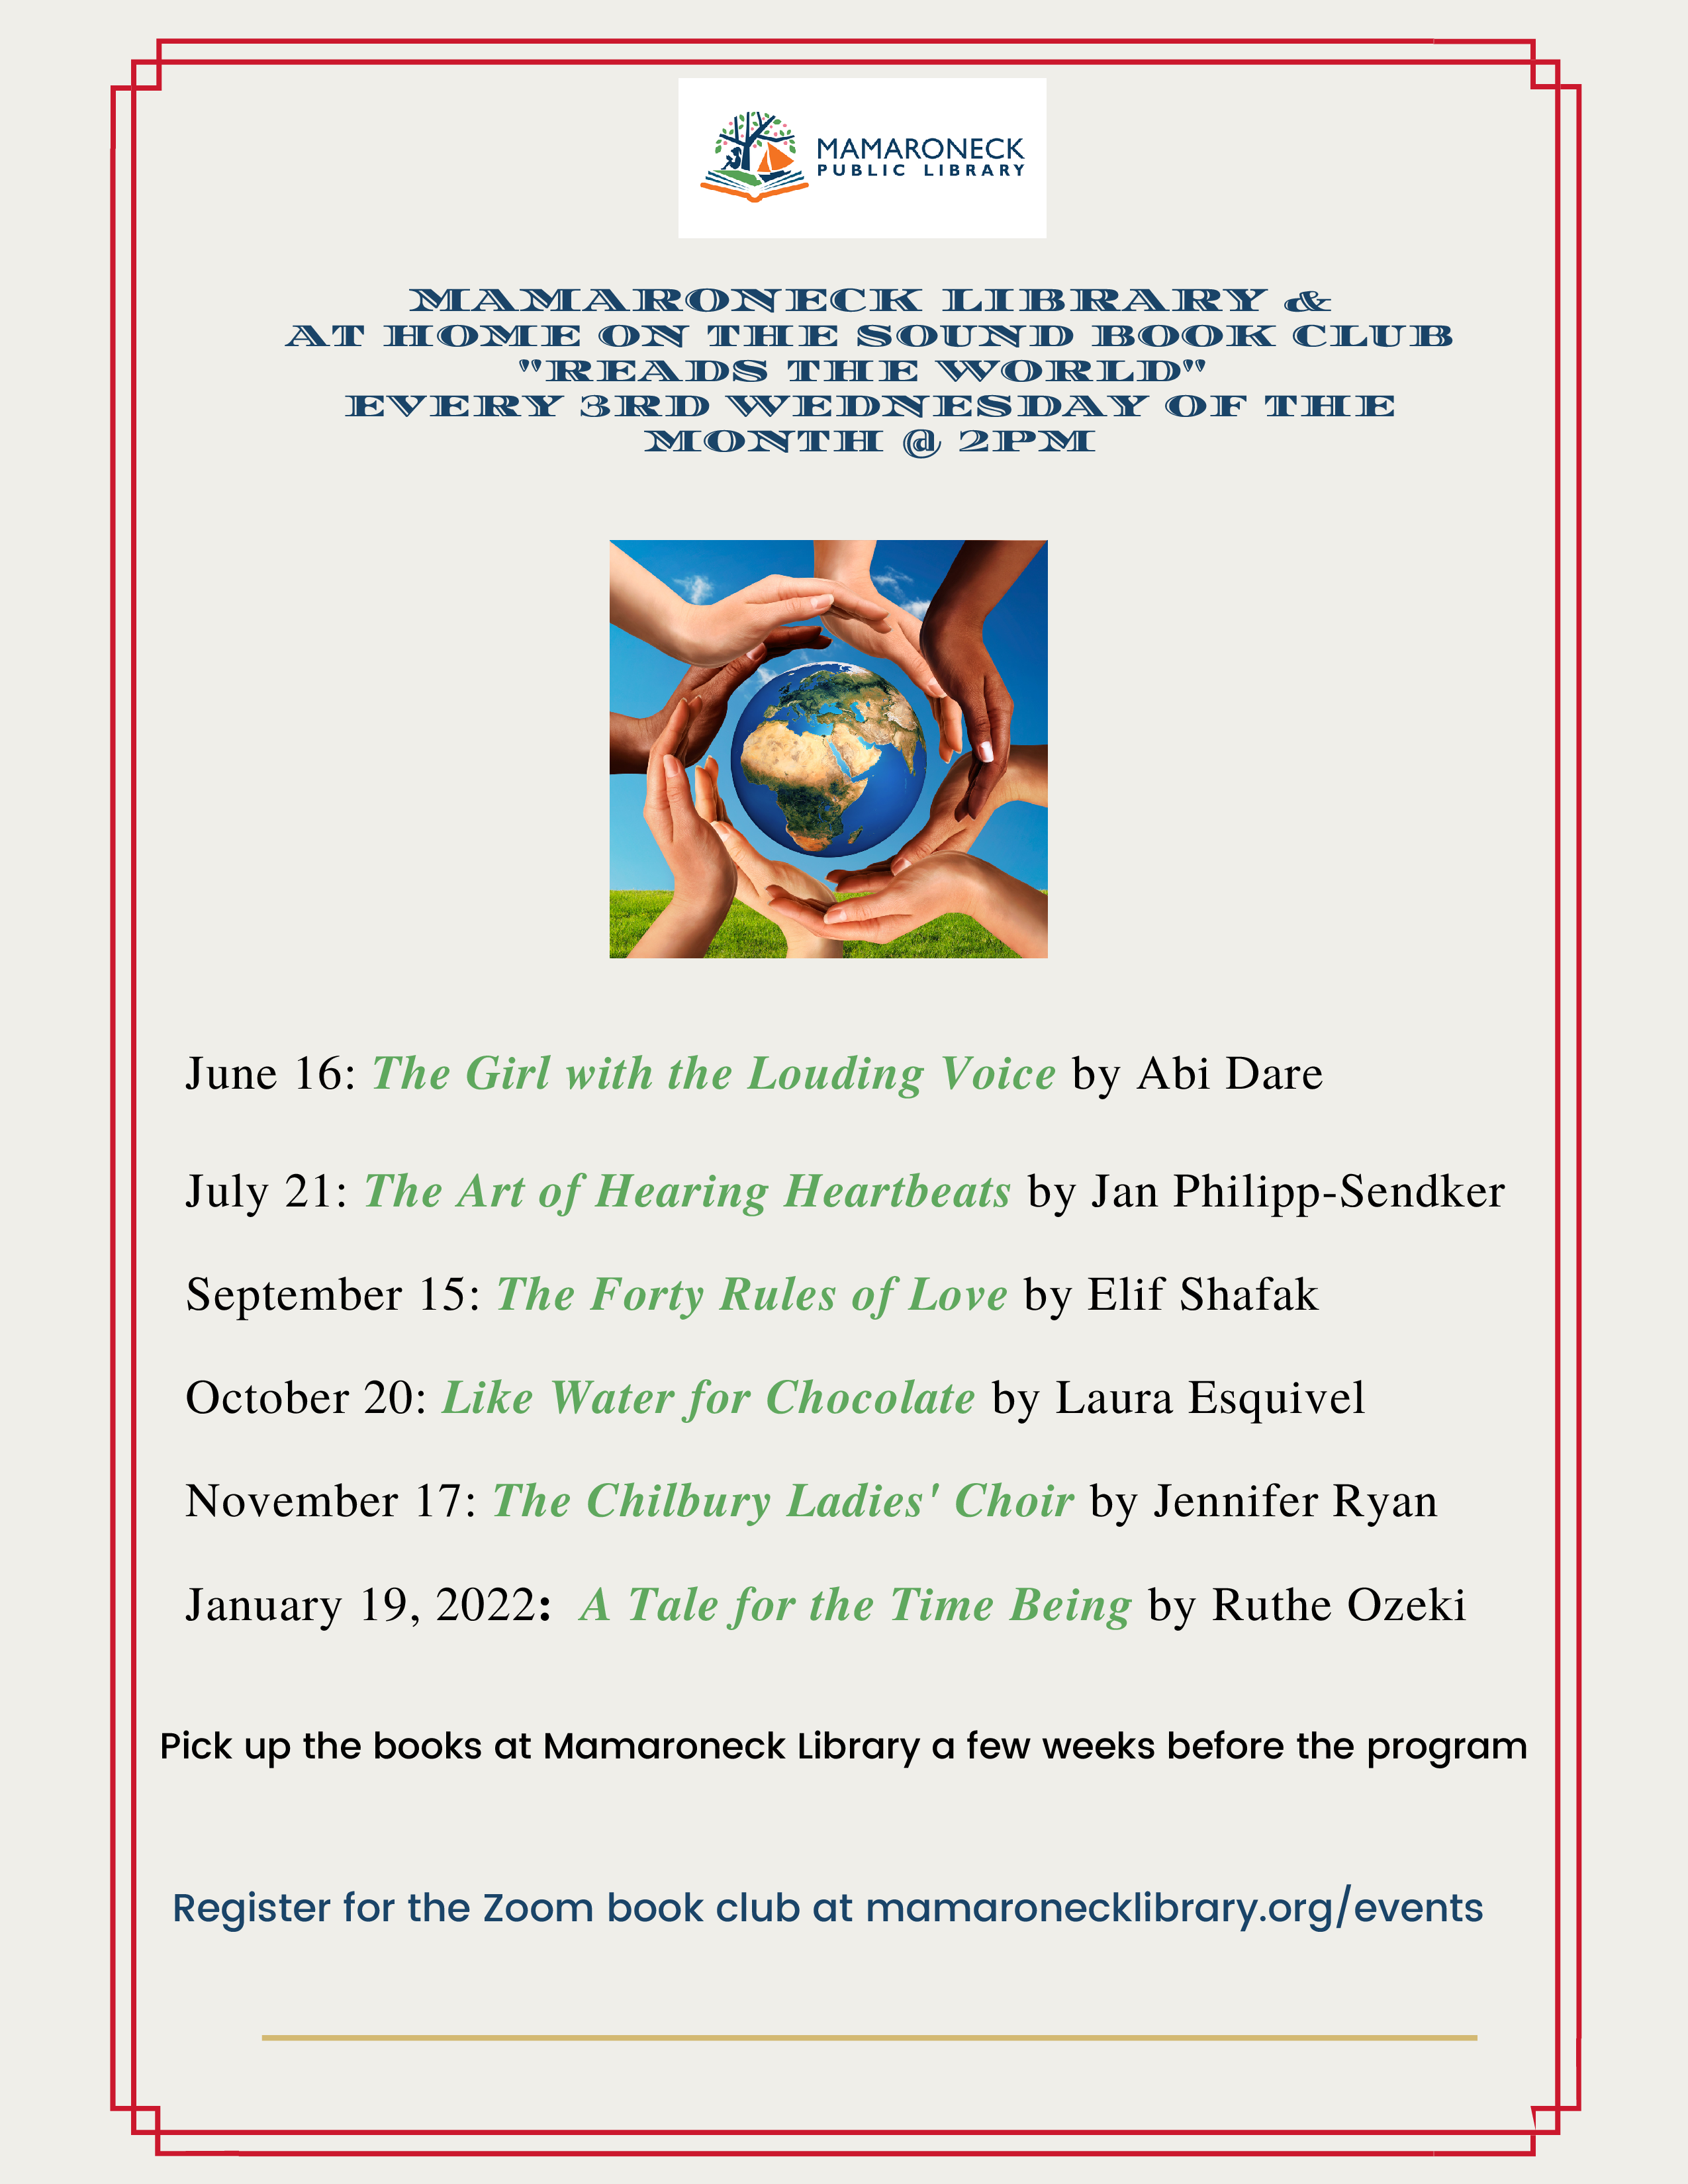 Mamaroneck book club schedule for remainder of 2021